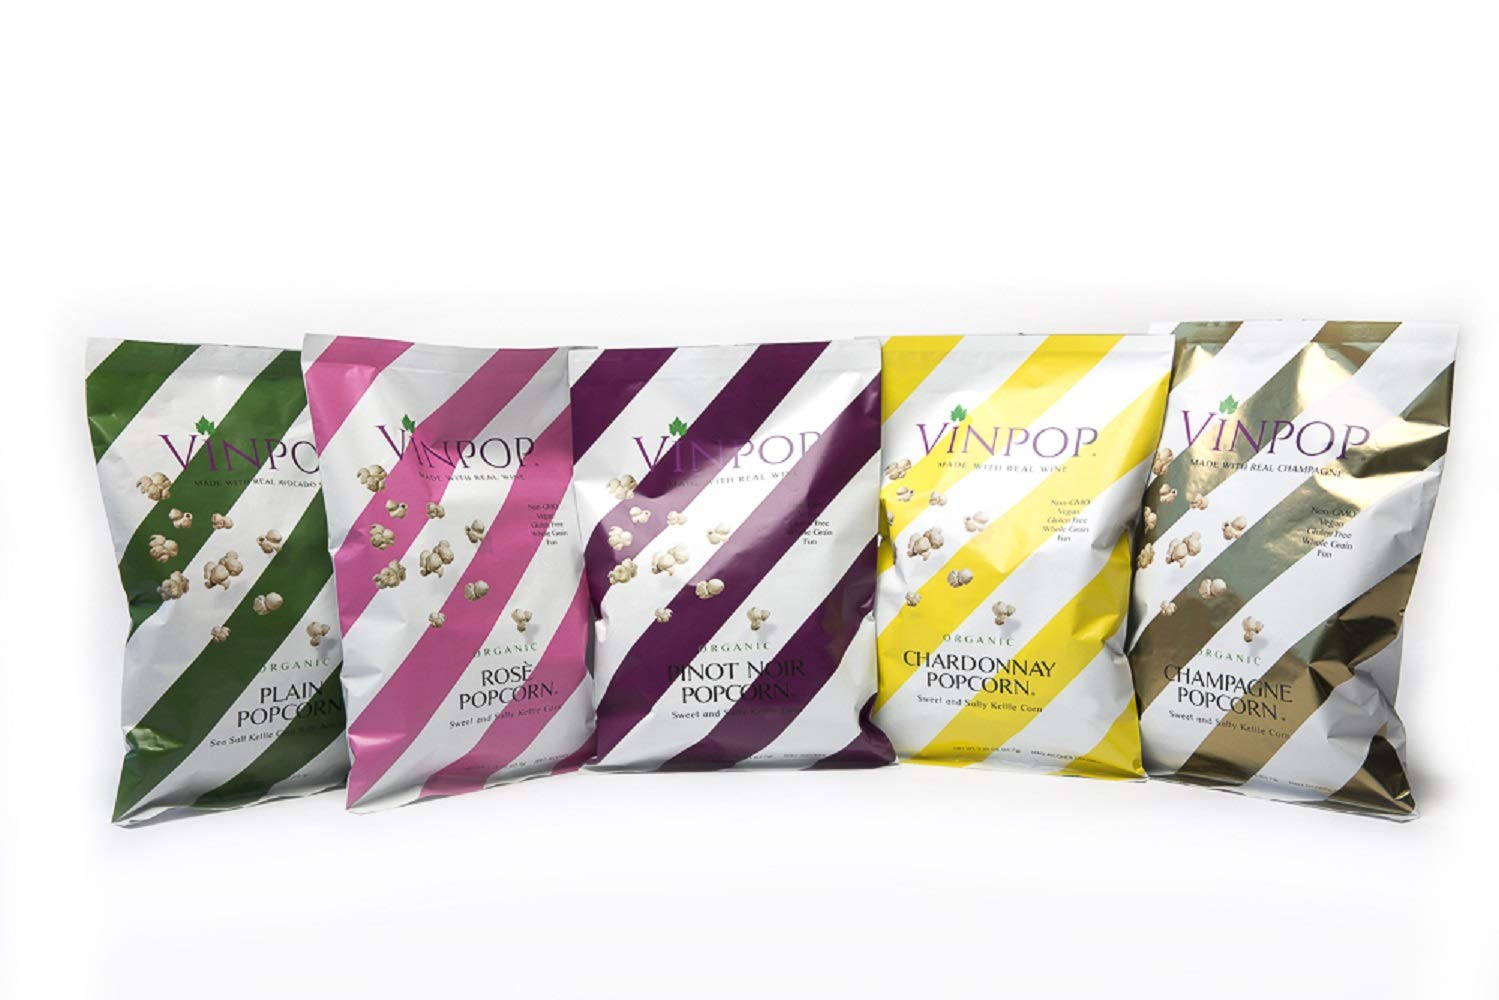 VINPOP Organic Inexpensive Popcorn - Variety Flight Pack Bag Ounce 2 5 Challenge the lowest price of Japan ☆ Pa